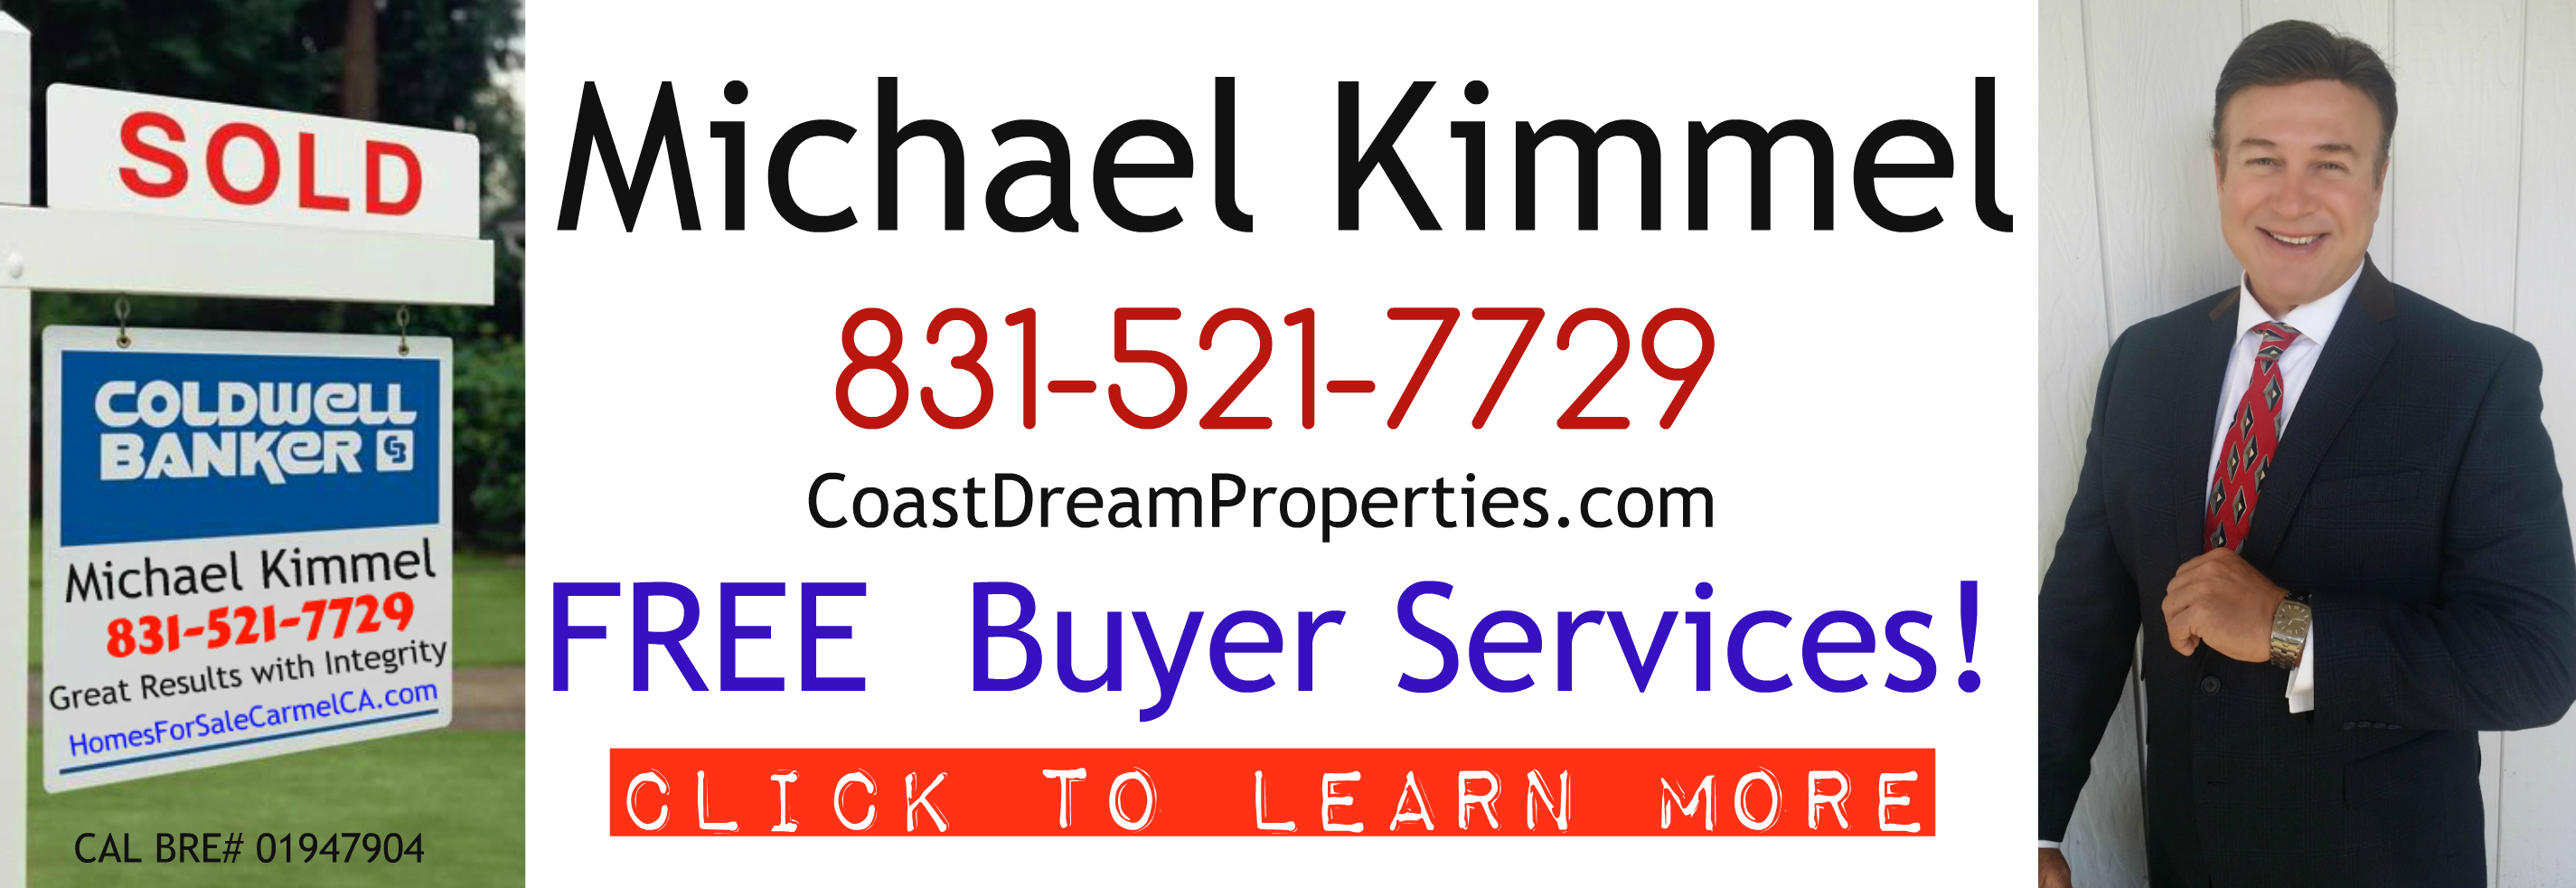 Free Buyer Services